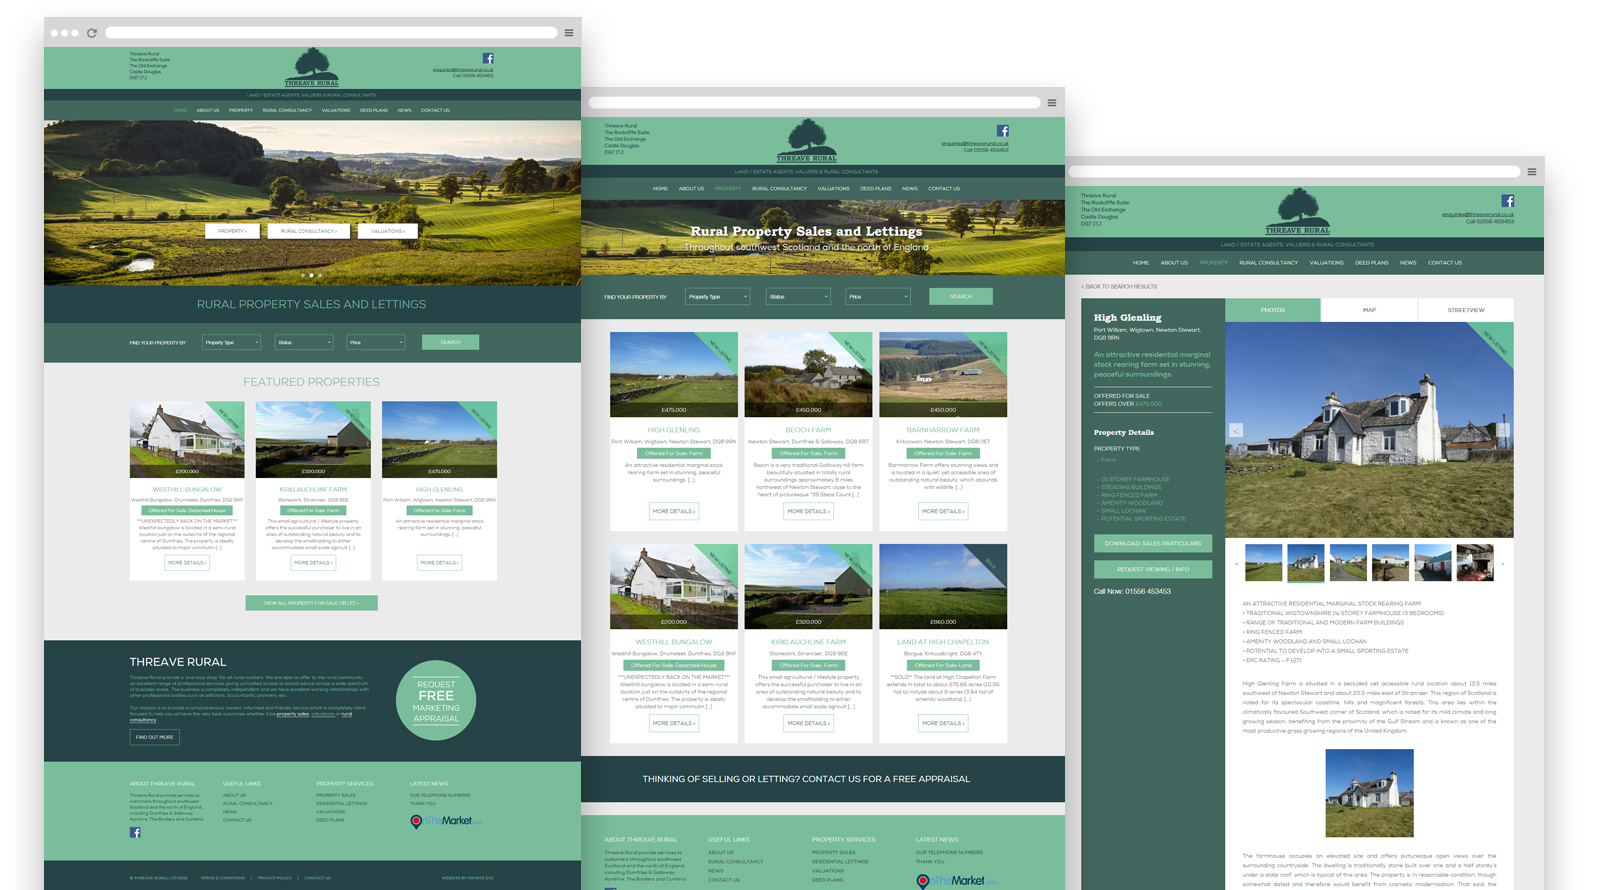 Threave Rural wordpress website